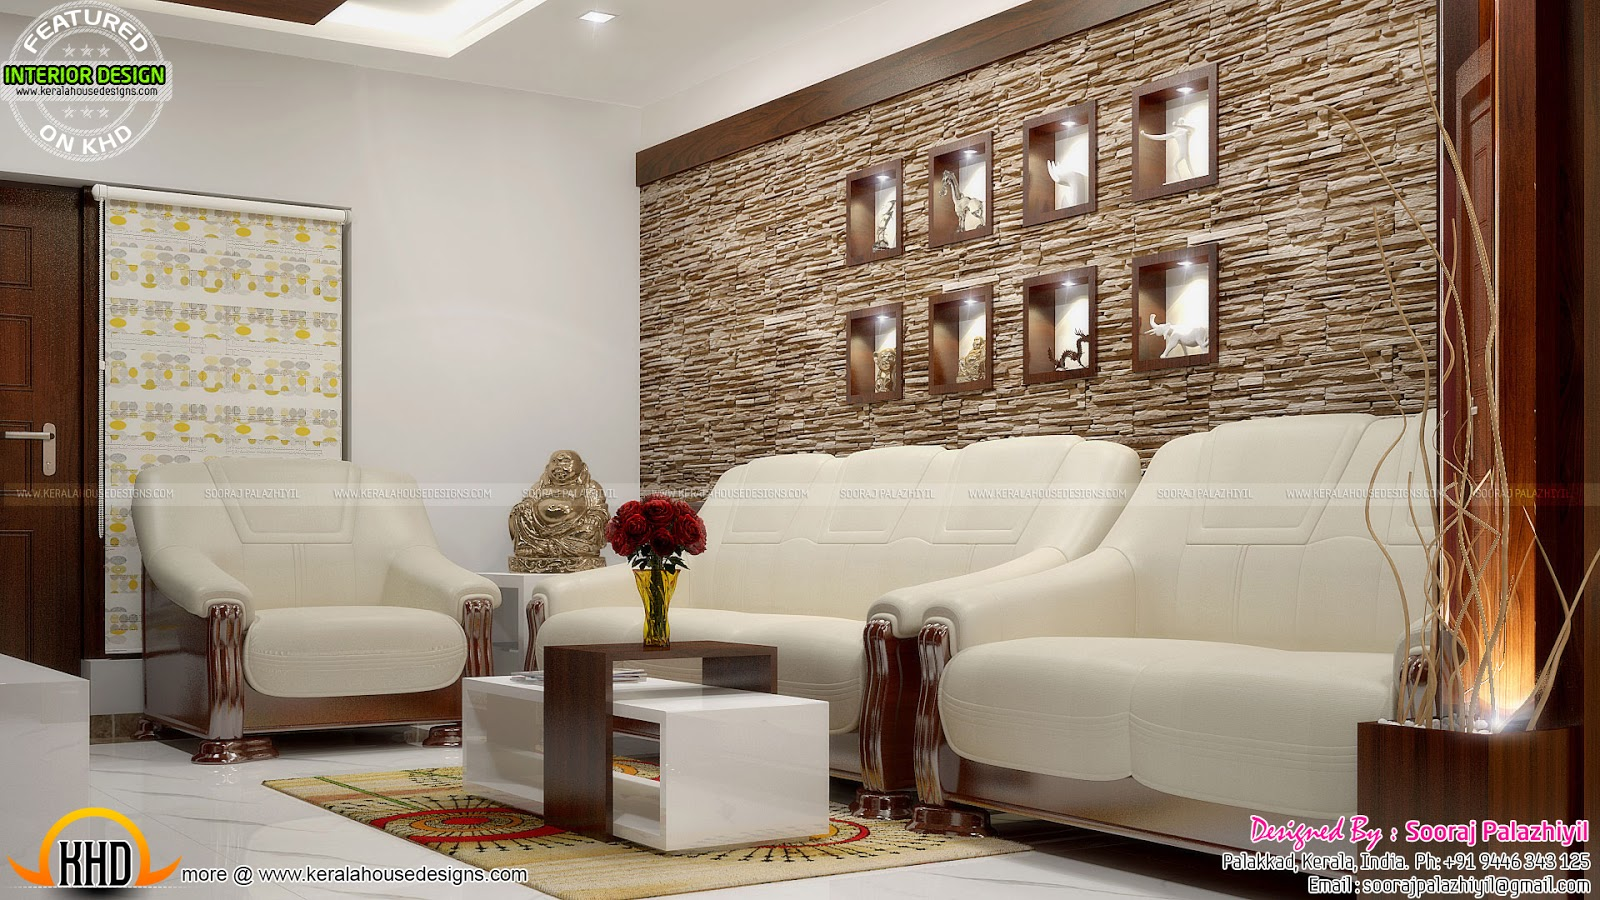 Simple apartment interior in kerala kerala home design and floor plans - Interior wall designs for living room ...